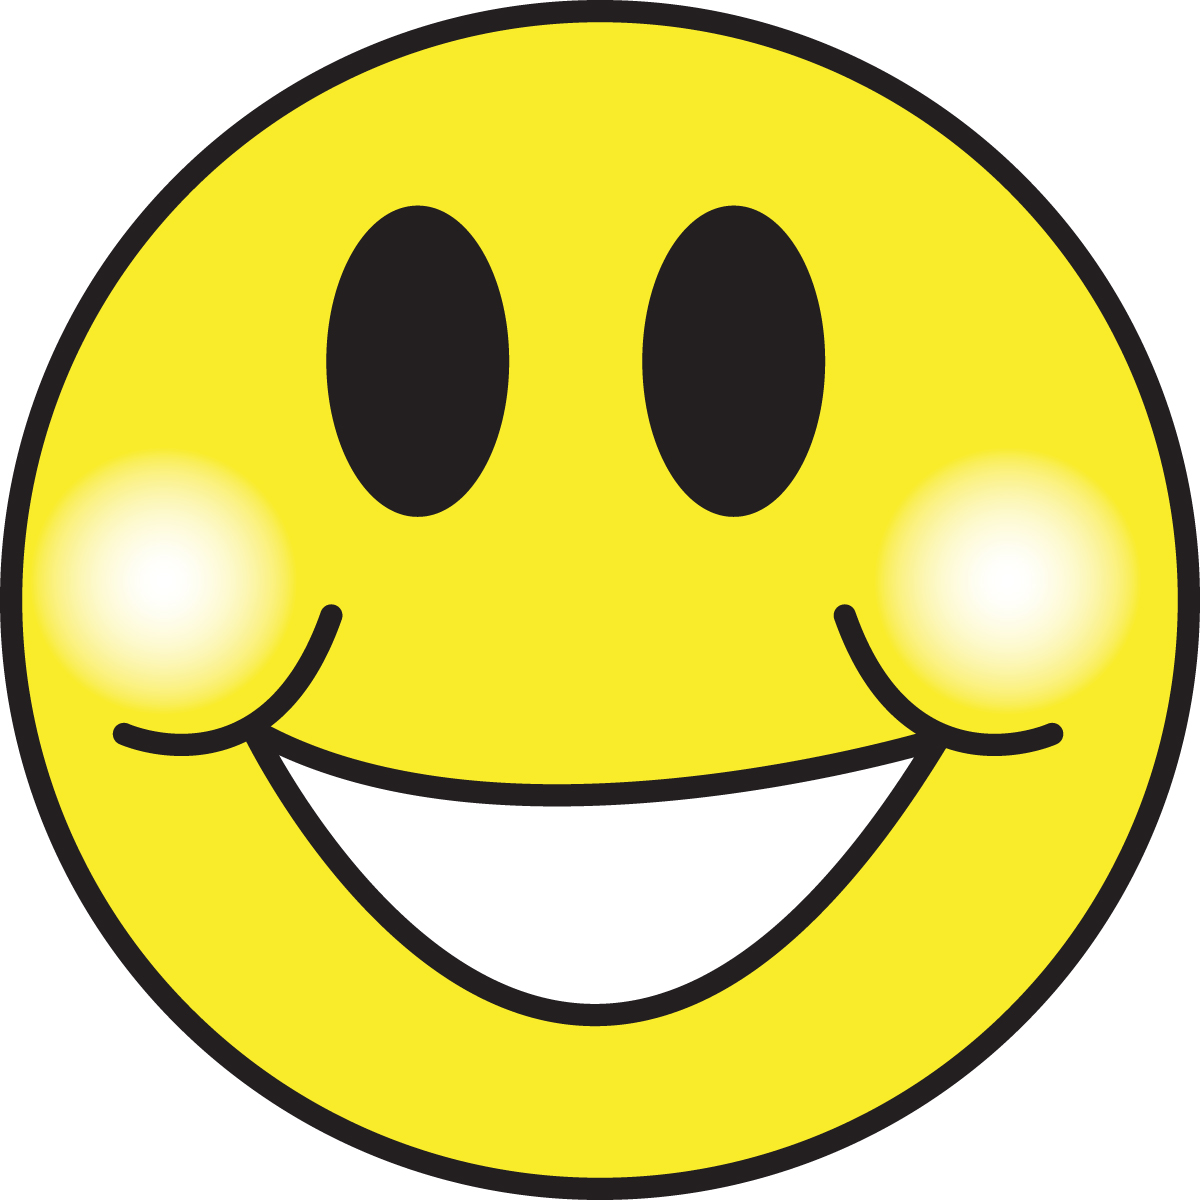 Smiley face happy face pictures clip art clipartix 2 - Cliparting.com